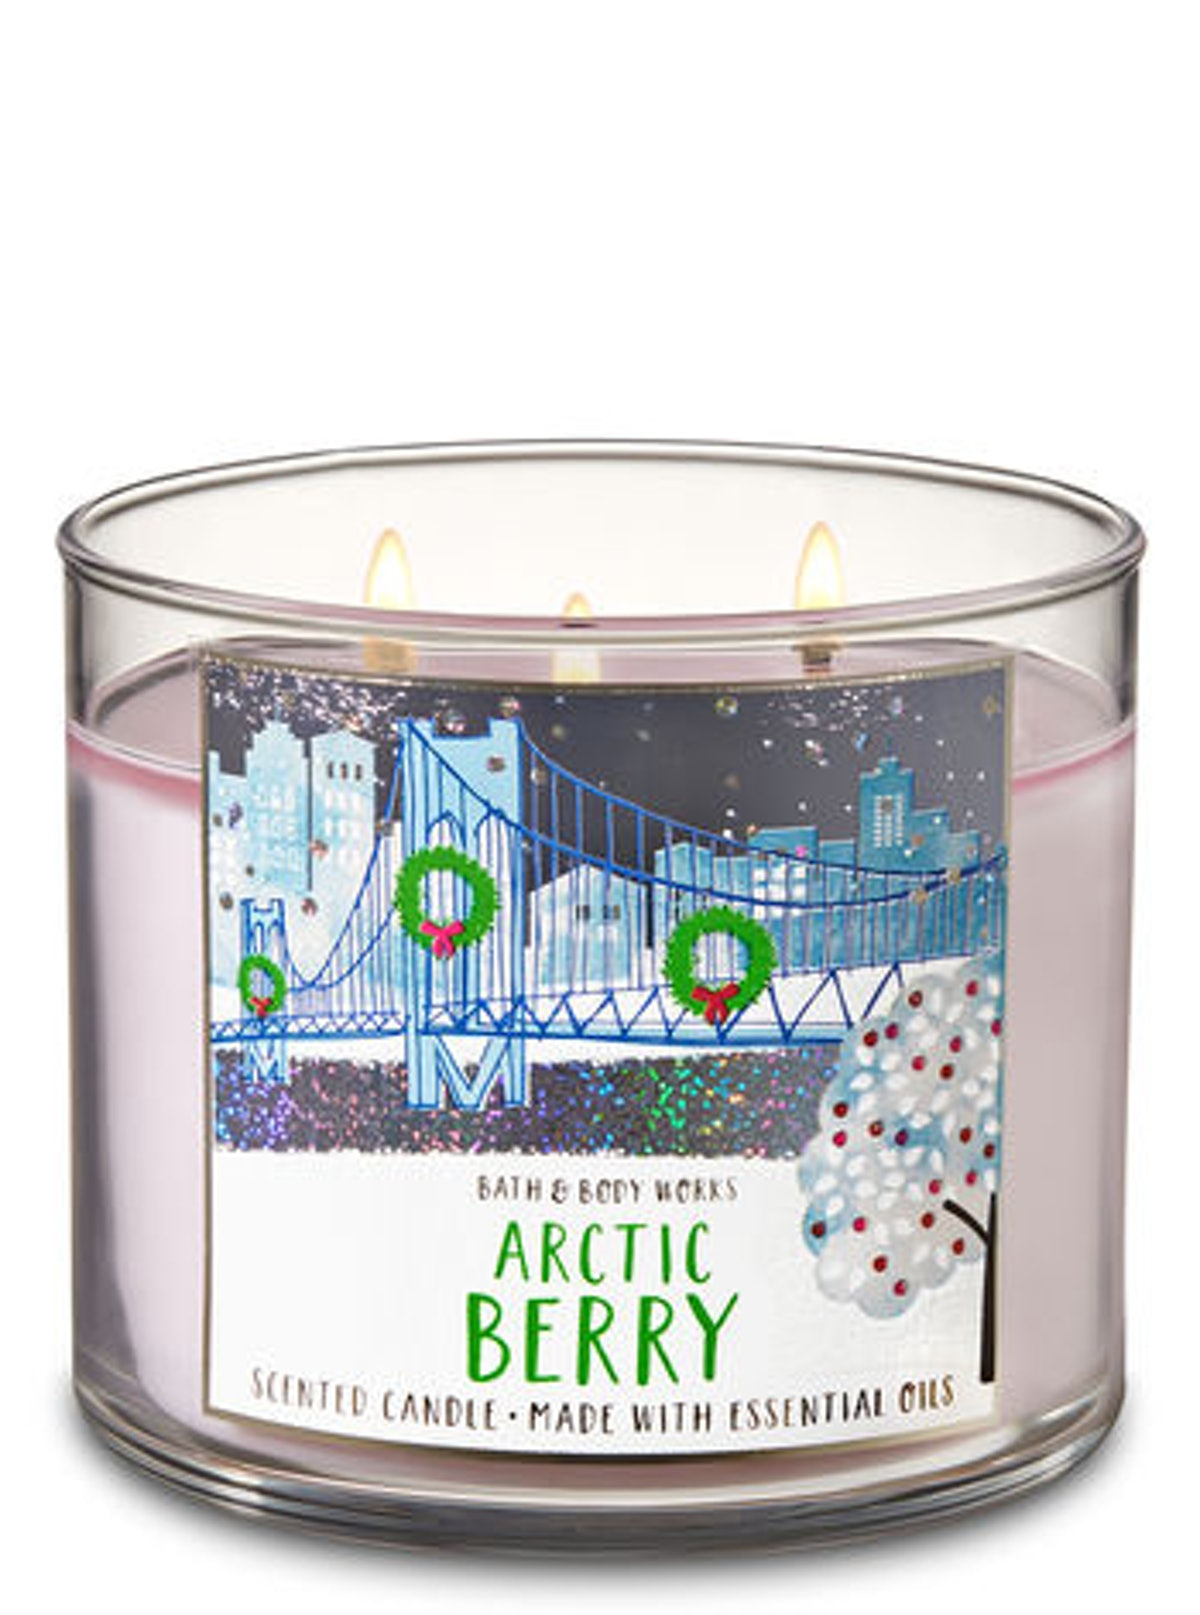 Arctic Berry 3-Wick Candle